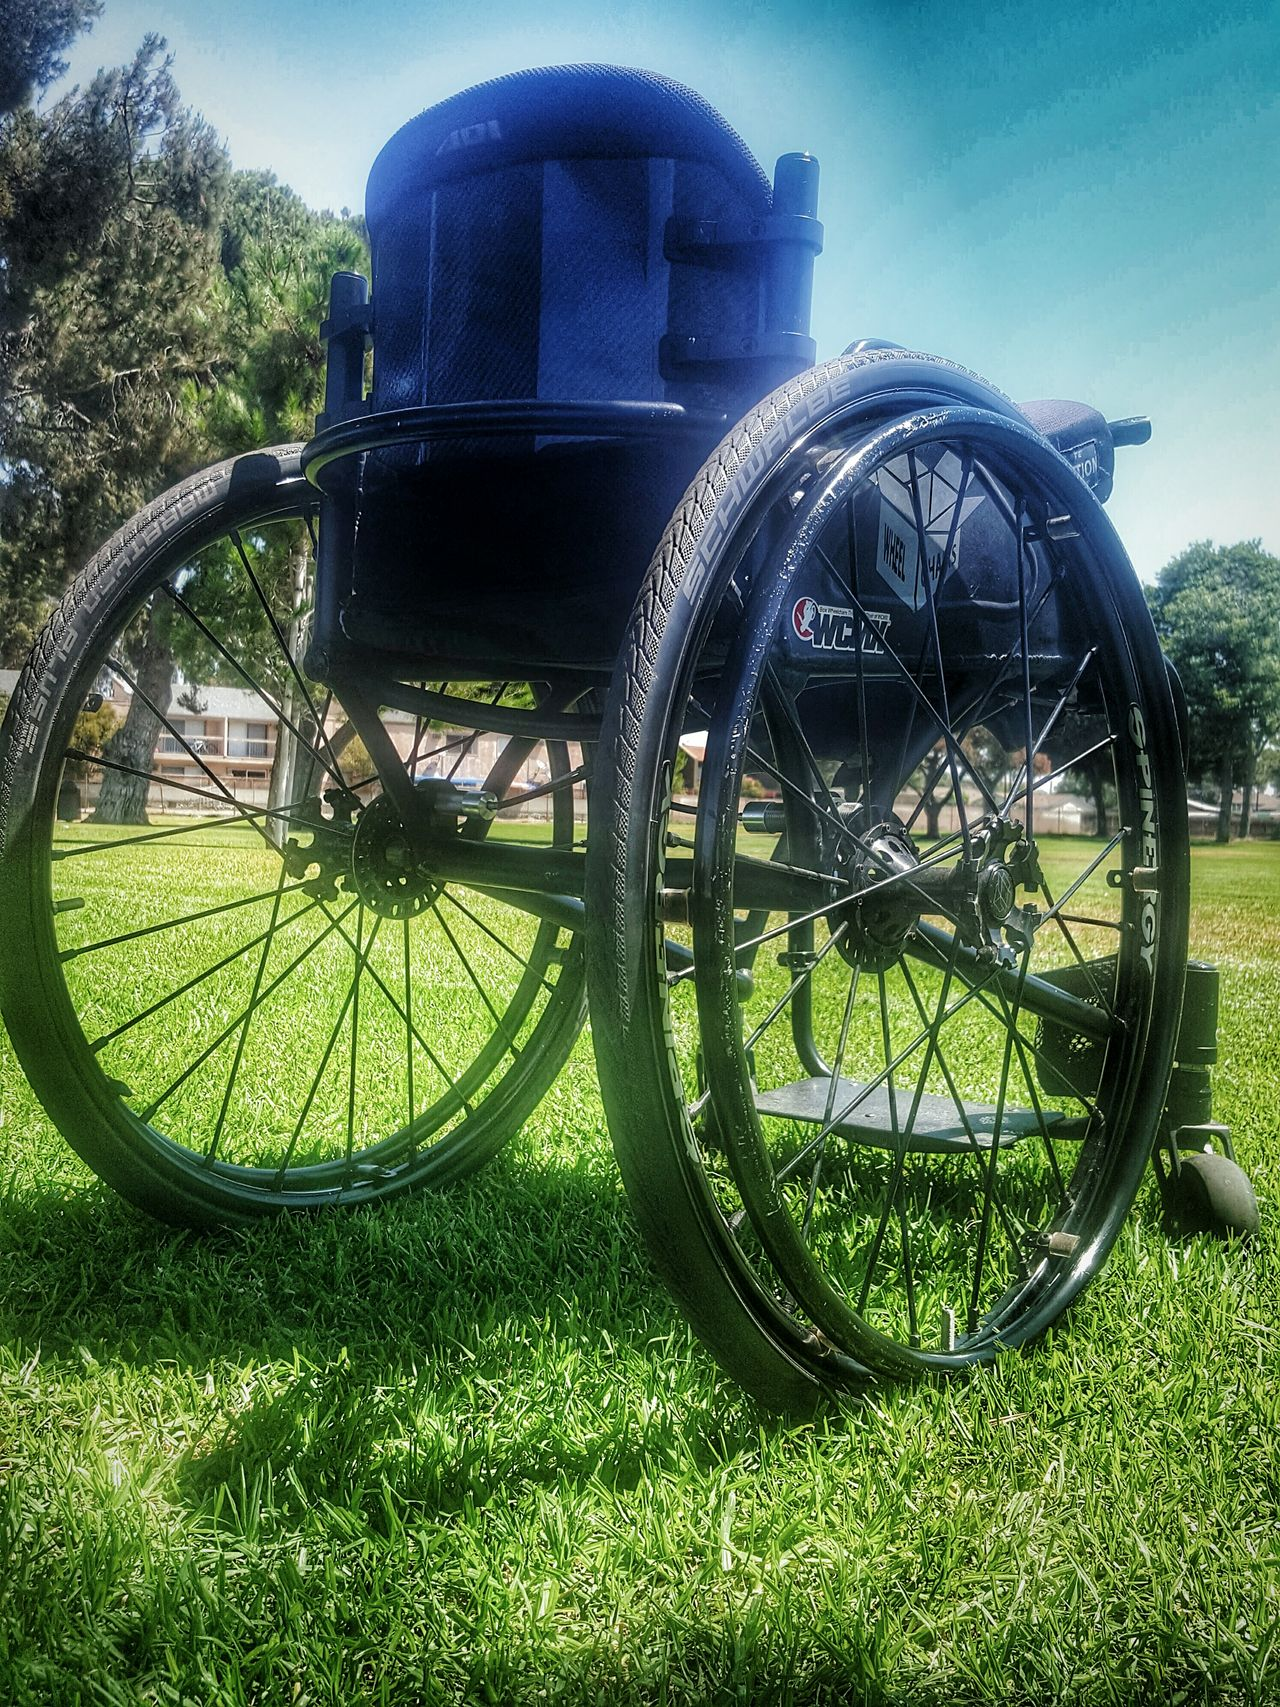 The Black Beast AKA My Everyday Rolling The Gimpin and Pimpin Lifestyle Chair Wheelchair Mobility Disabled Disability Not Inability Disabledveteran Lifestyles Gimpin-and-Pimpin That's Me Perspective ForTheLoveOfPhotography Eye4photography  Boxwheelchairs From My Point Of View Eyeemphotography Parks City Parks Outdoors EyeEm Nature Disabled Person Rolemodel Rollmodel